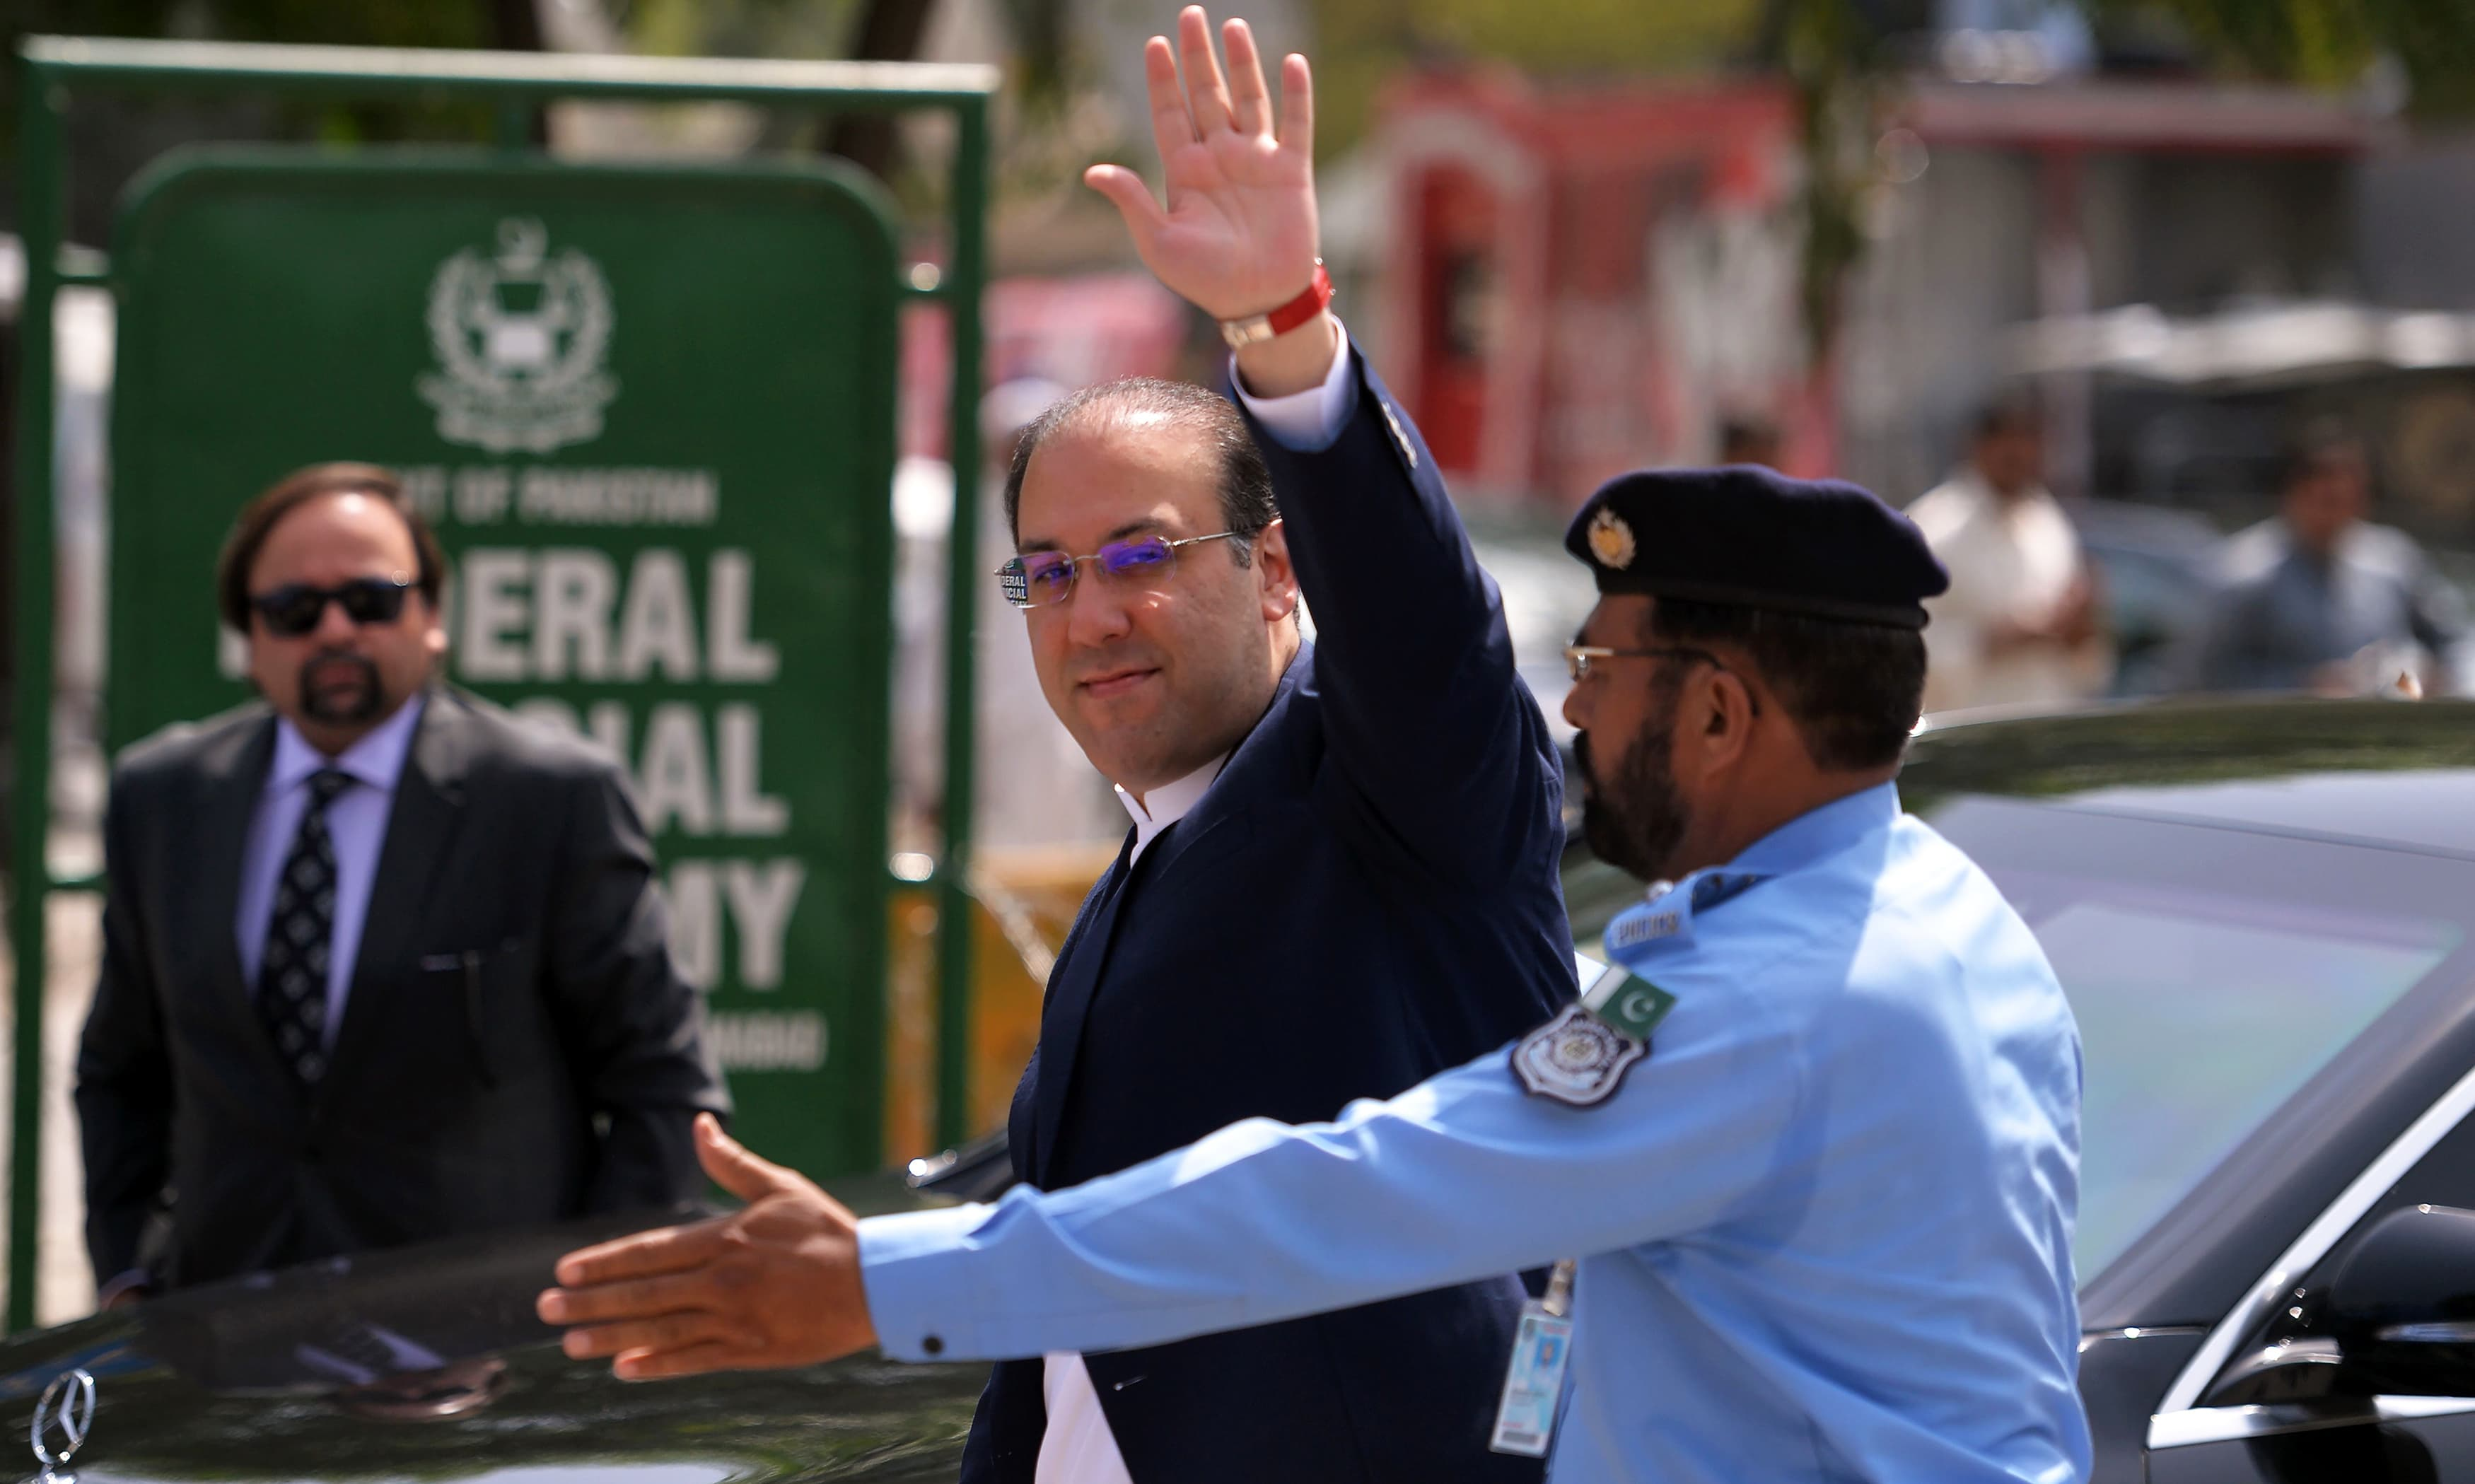 Hassan Nawaz waves as he arrives to record his statement before the JIT at the Federal Judicial Academy in Islamabad. —AFP